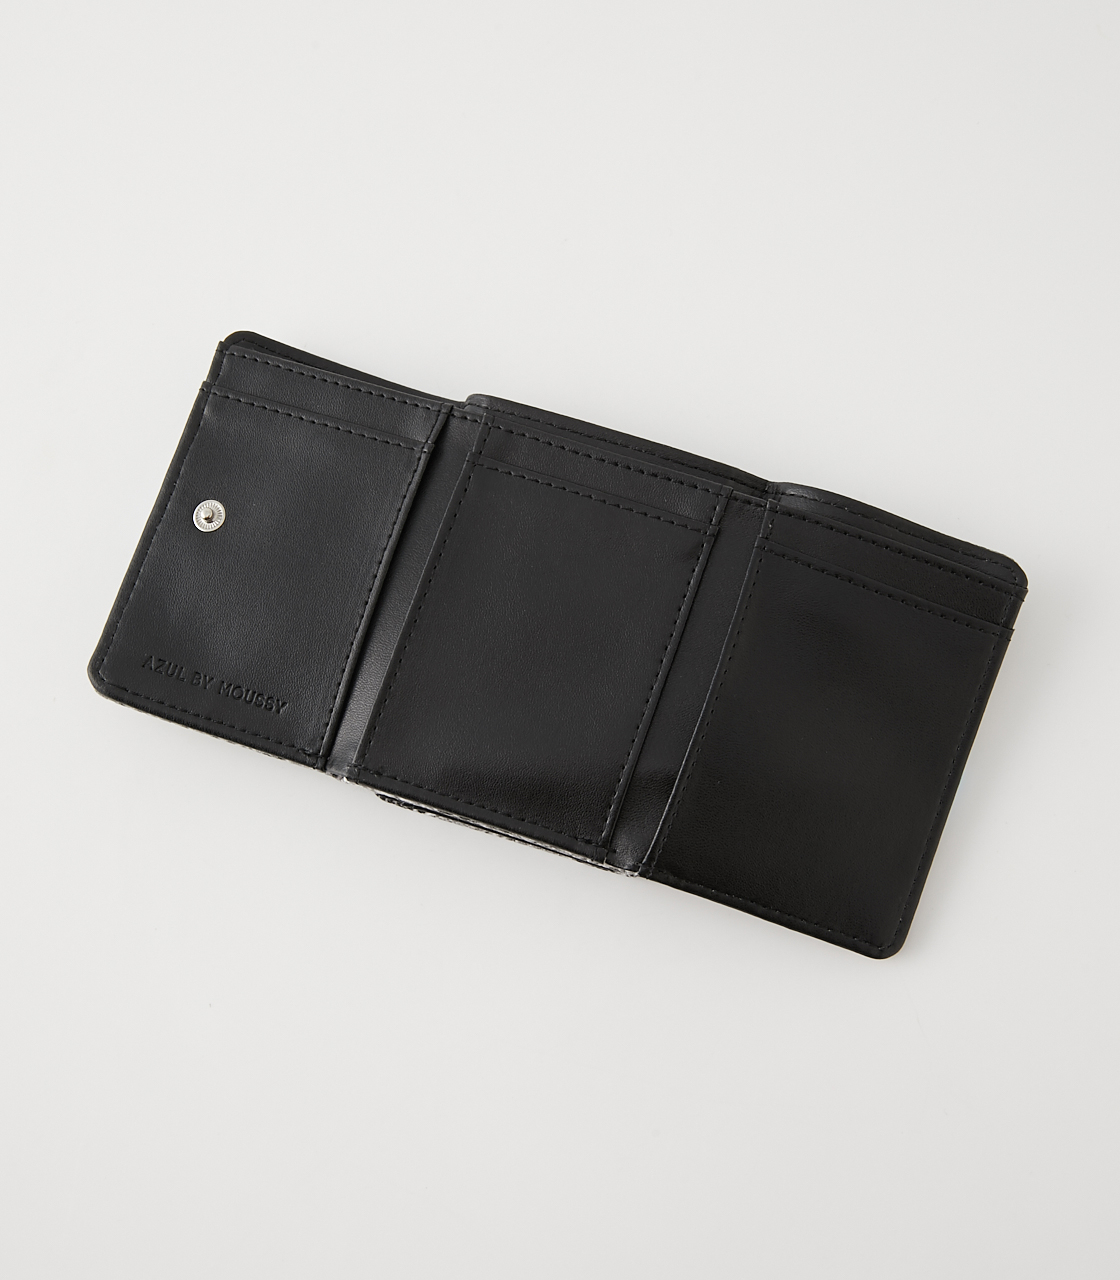 COMPACT WALLET/コンパクトウォレット 詳細画像 柄GRY 6